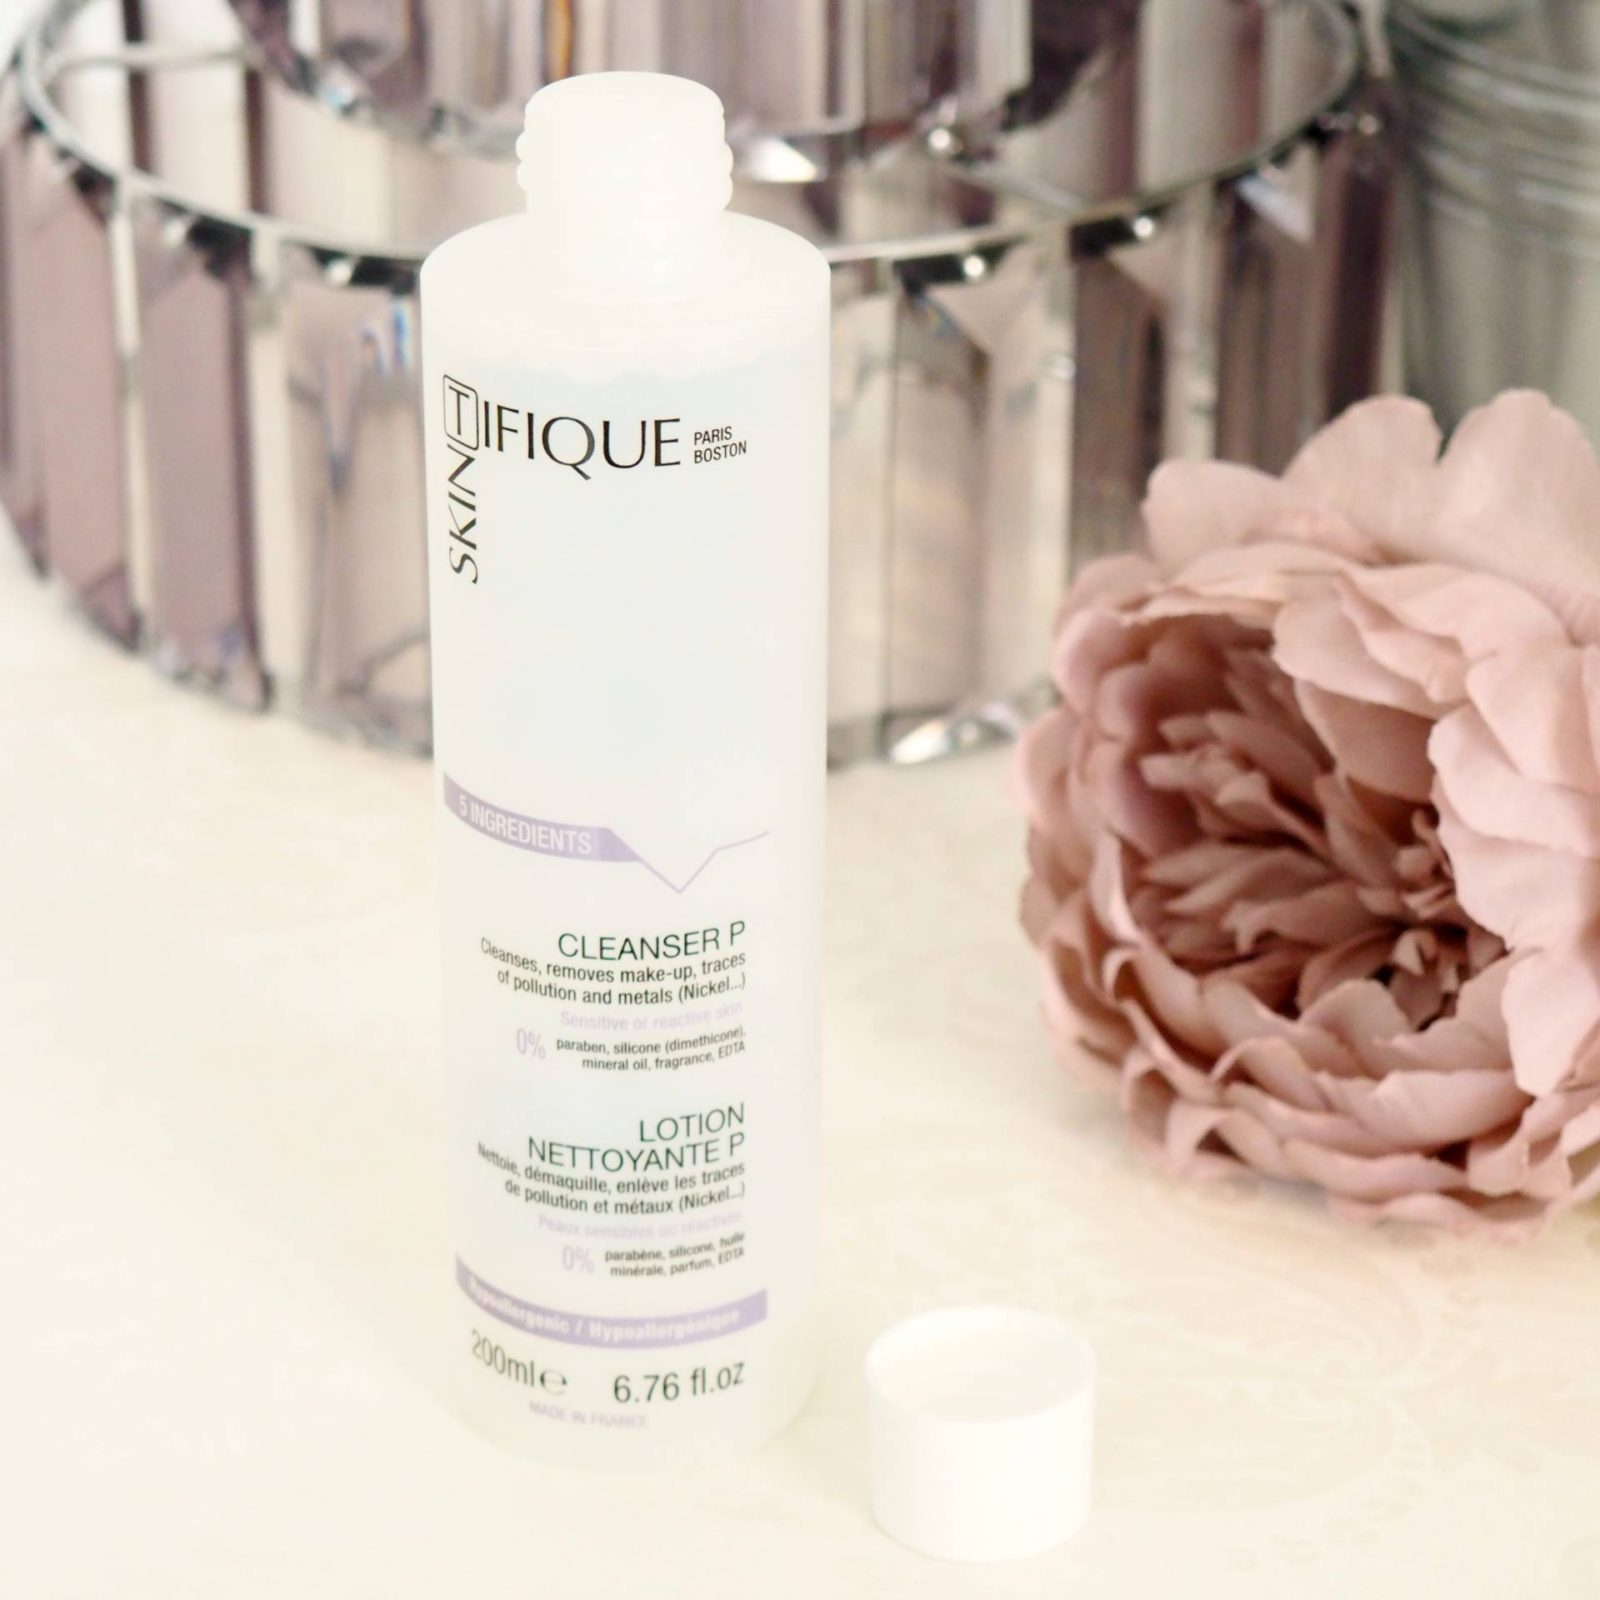 Skintifique Cleanser P Review